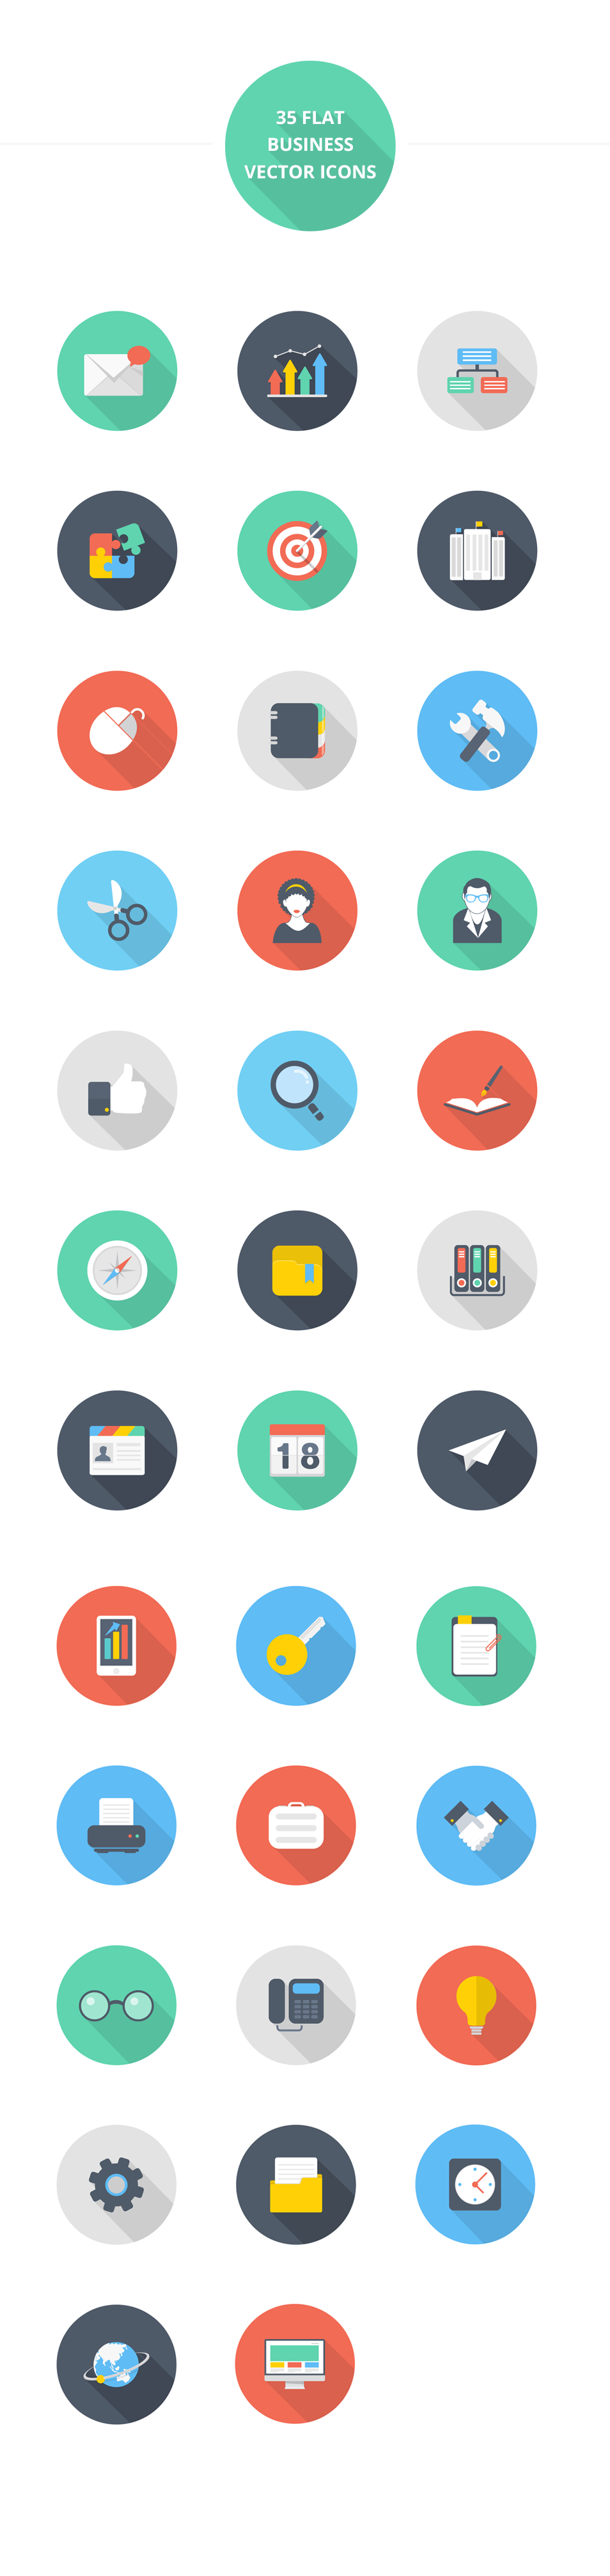 Beautiful Flat style icon set Flat design icons, Icon